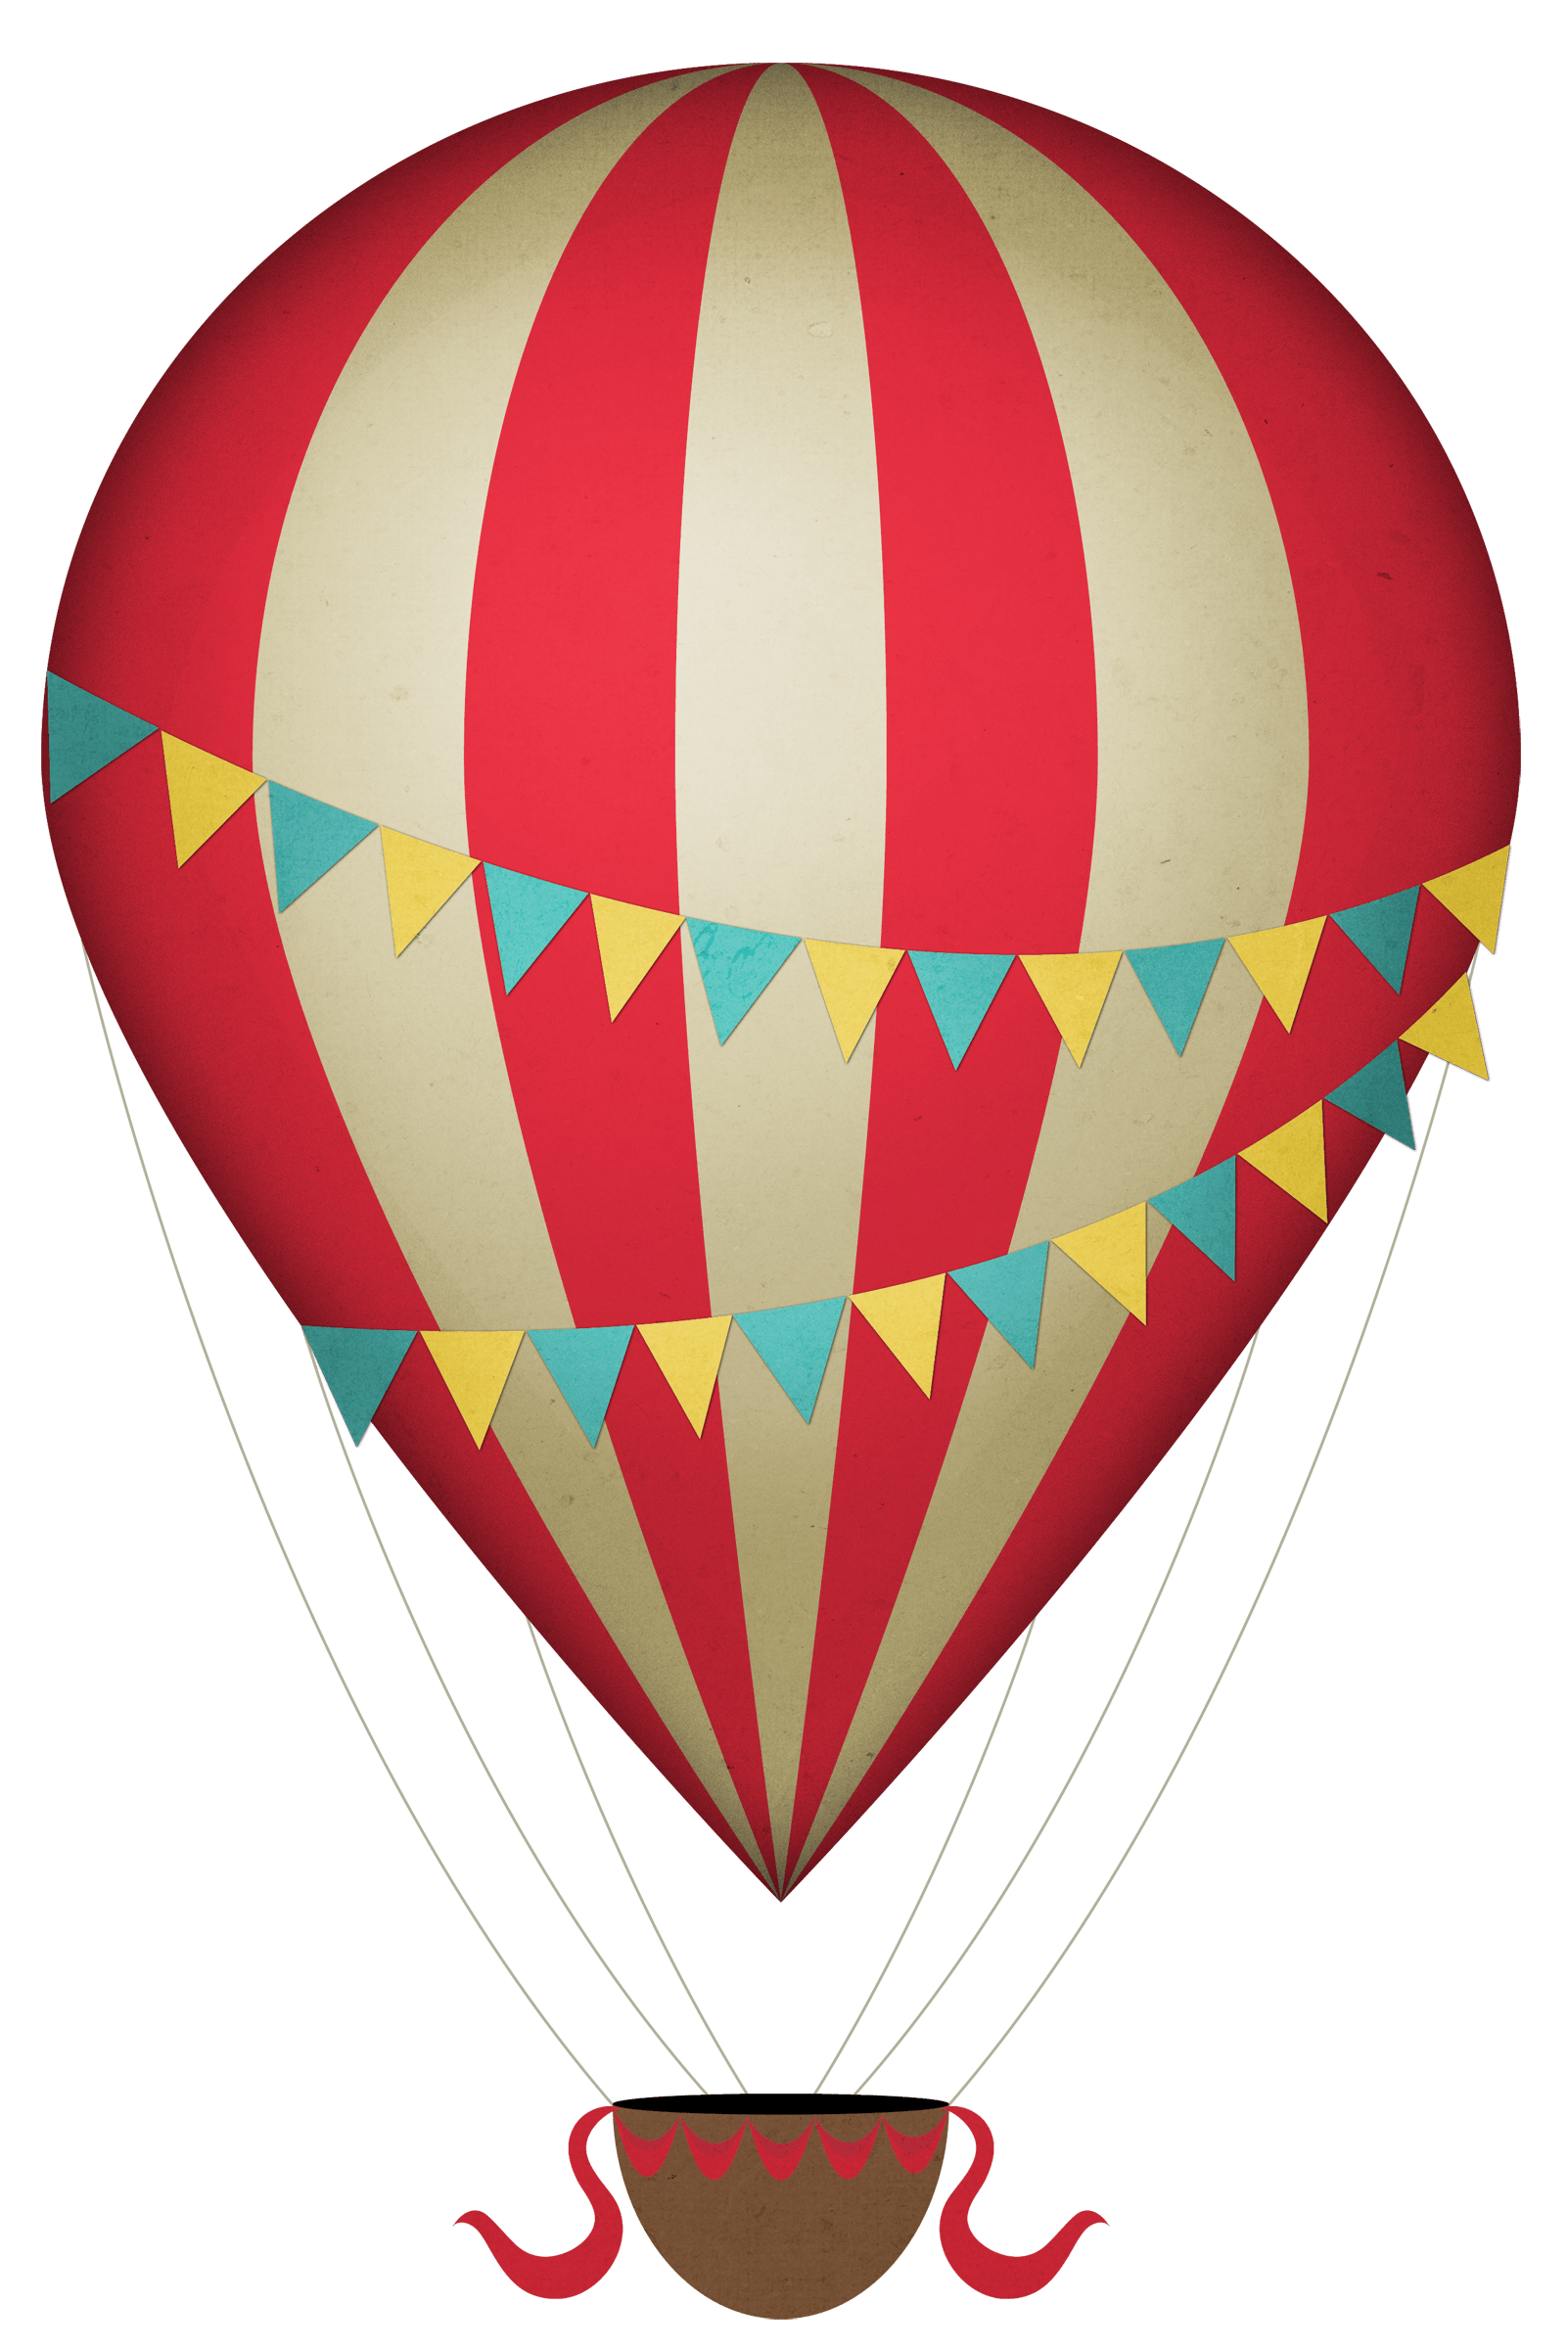 Vintage hot balloon transparent. Gas clipart air ballon